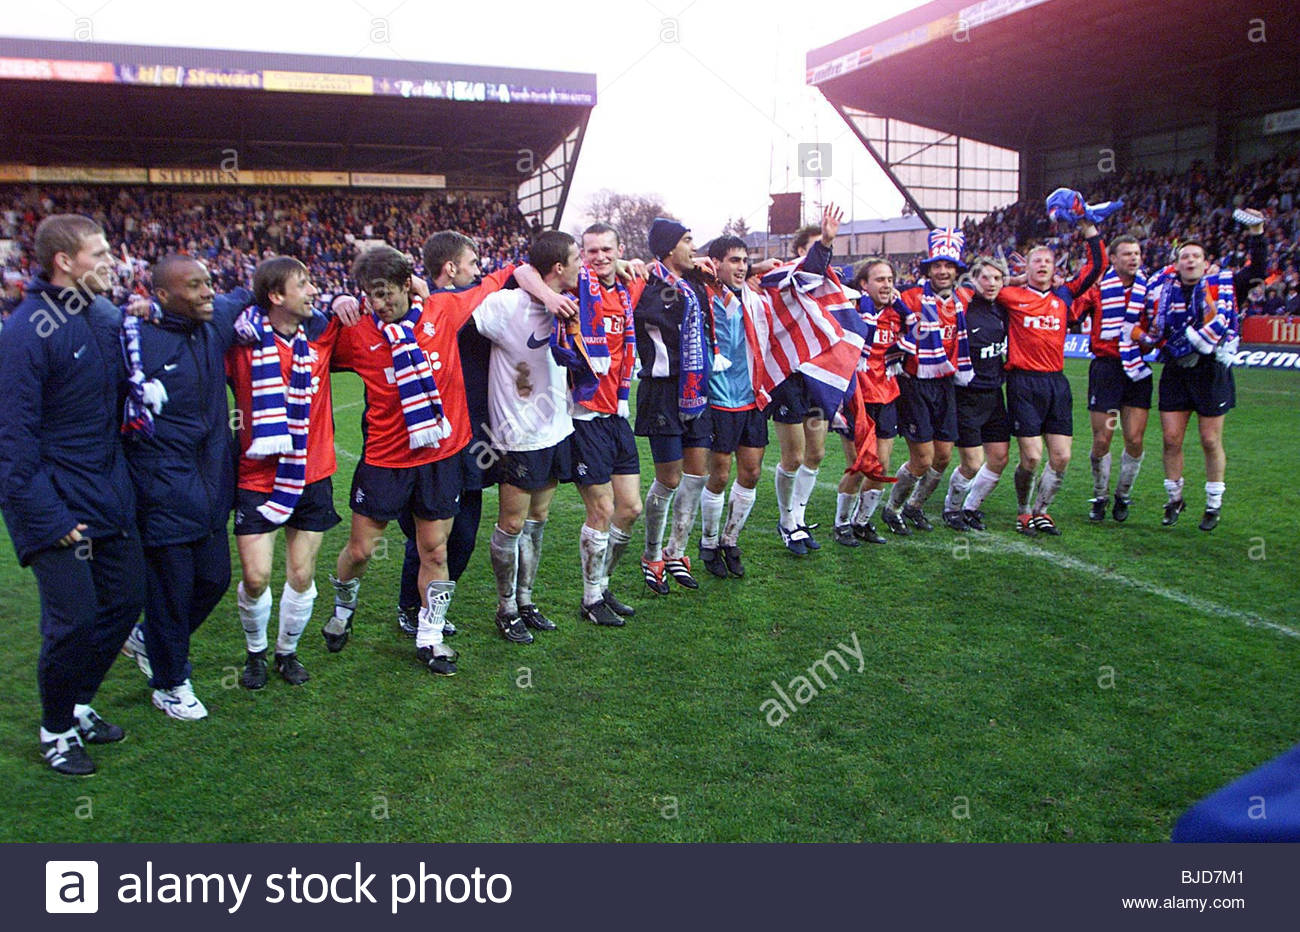 23/04/00 SPL ST JOHNSTONE V RANGERS (0-2) McDIARMID PARK - PERTH The Rangers players celebrate their championship - Stock Image